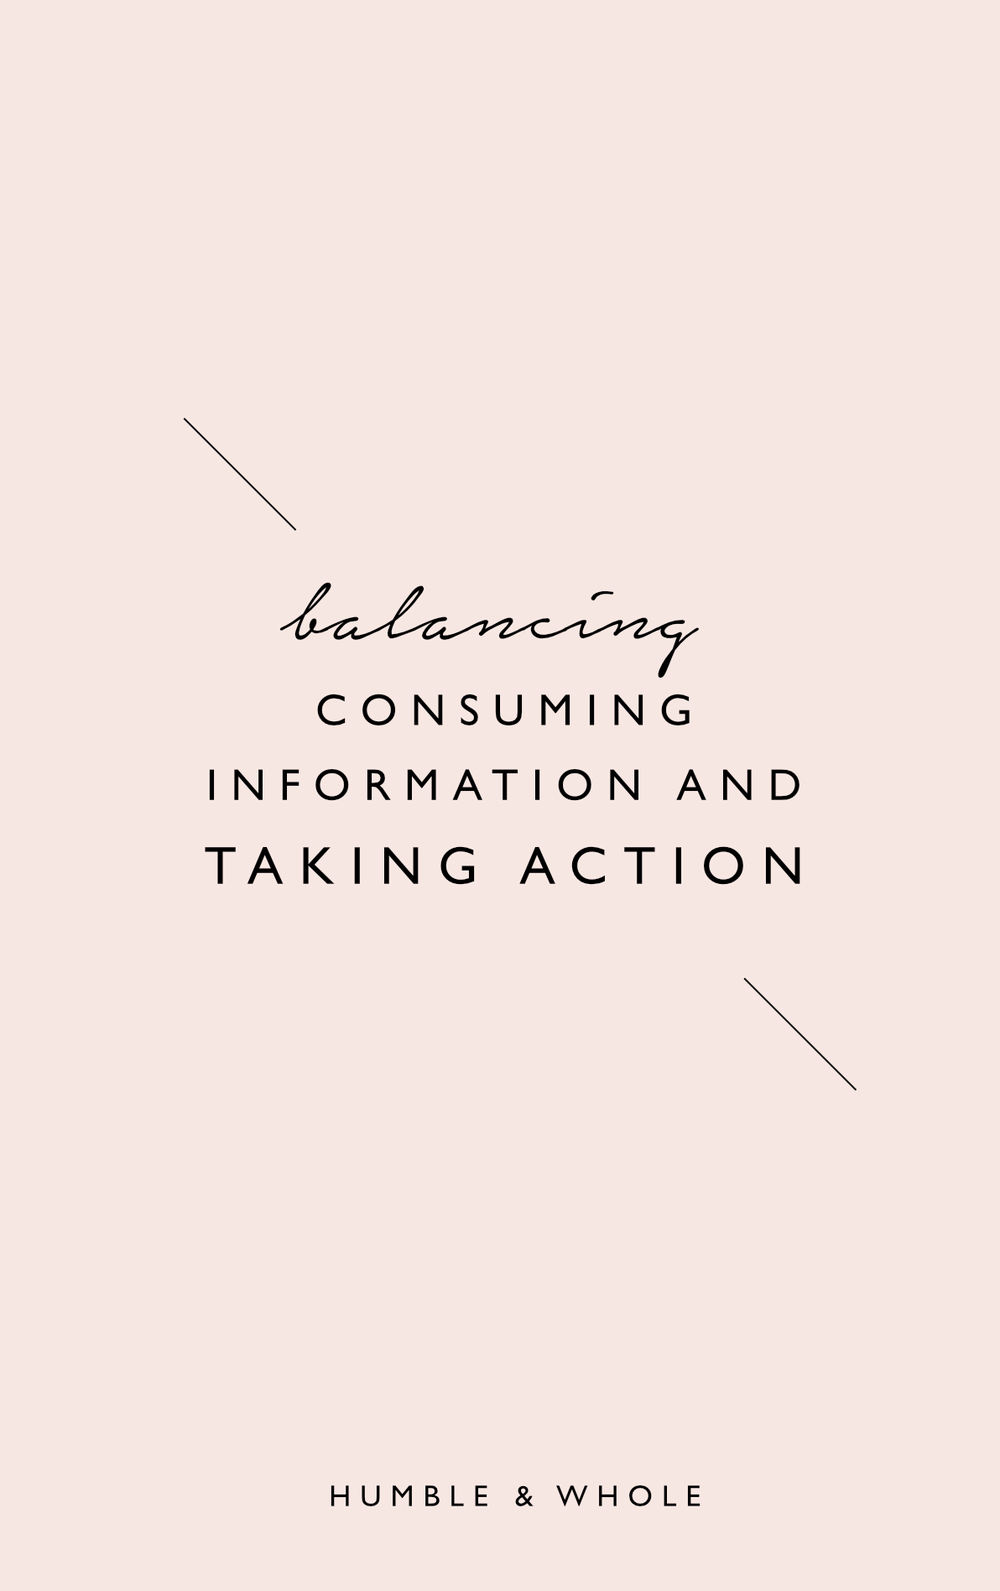 Wondering how to balance learning new things and still take action so that you can see progress as you build your business? We've got you covered! Click through to read our best tips for wisely managing your time for both learning and implementing!